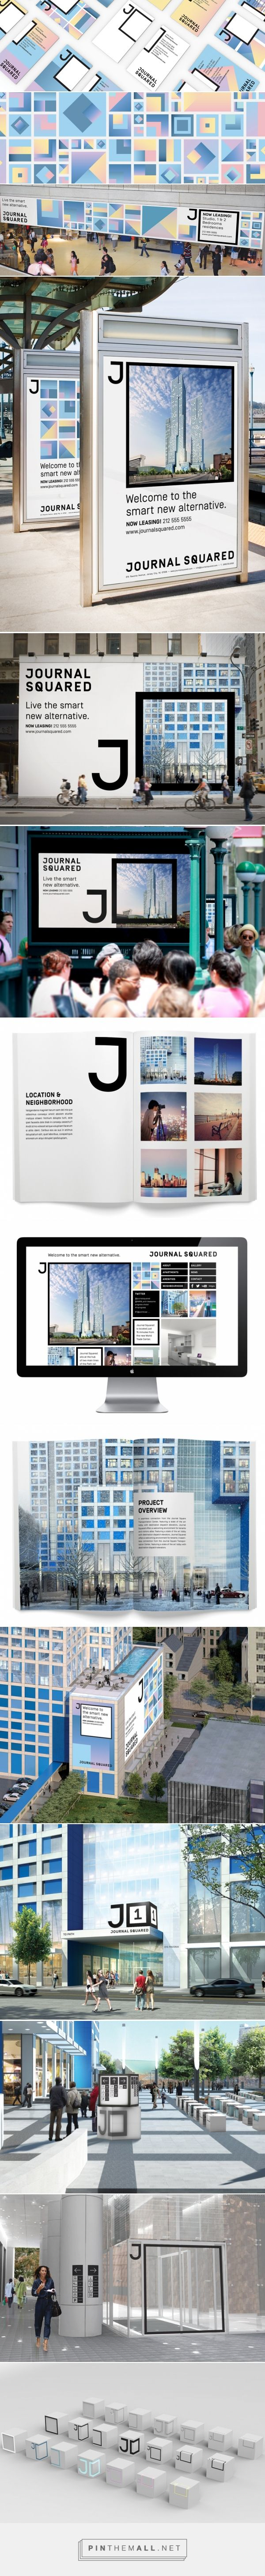 Bruce Mau Design | Journal Squared | Work - created via http://pinthemall.net